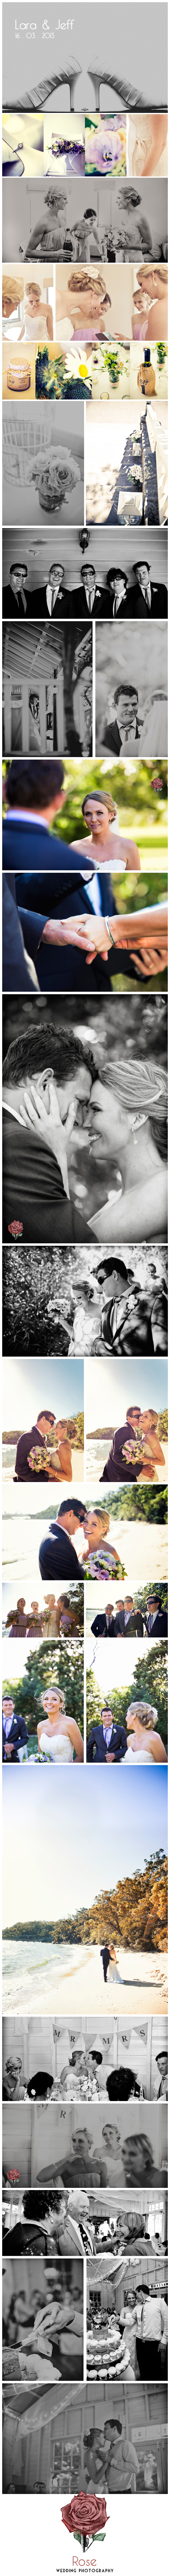 Lara Cox, Jeff Springer, Norther beaches wedding, sydney wedding, rose wedding photography, Athol Hall, Mosman Wedding.